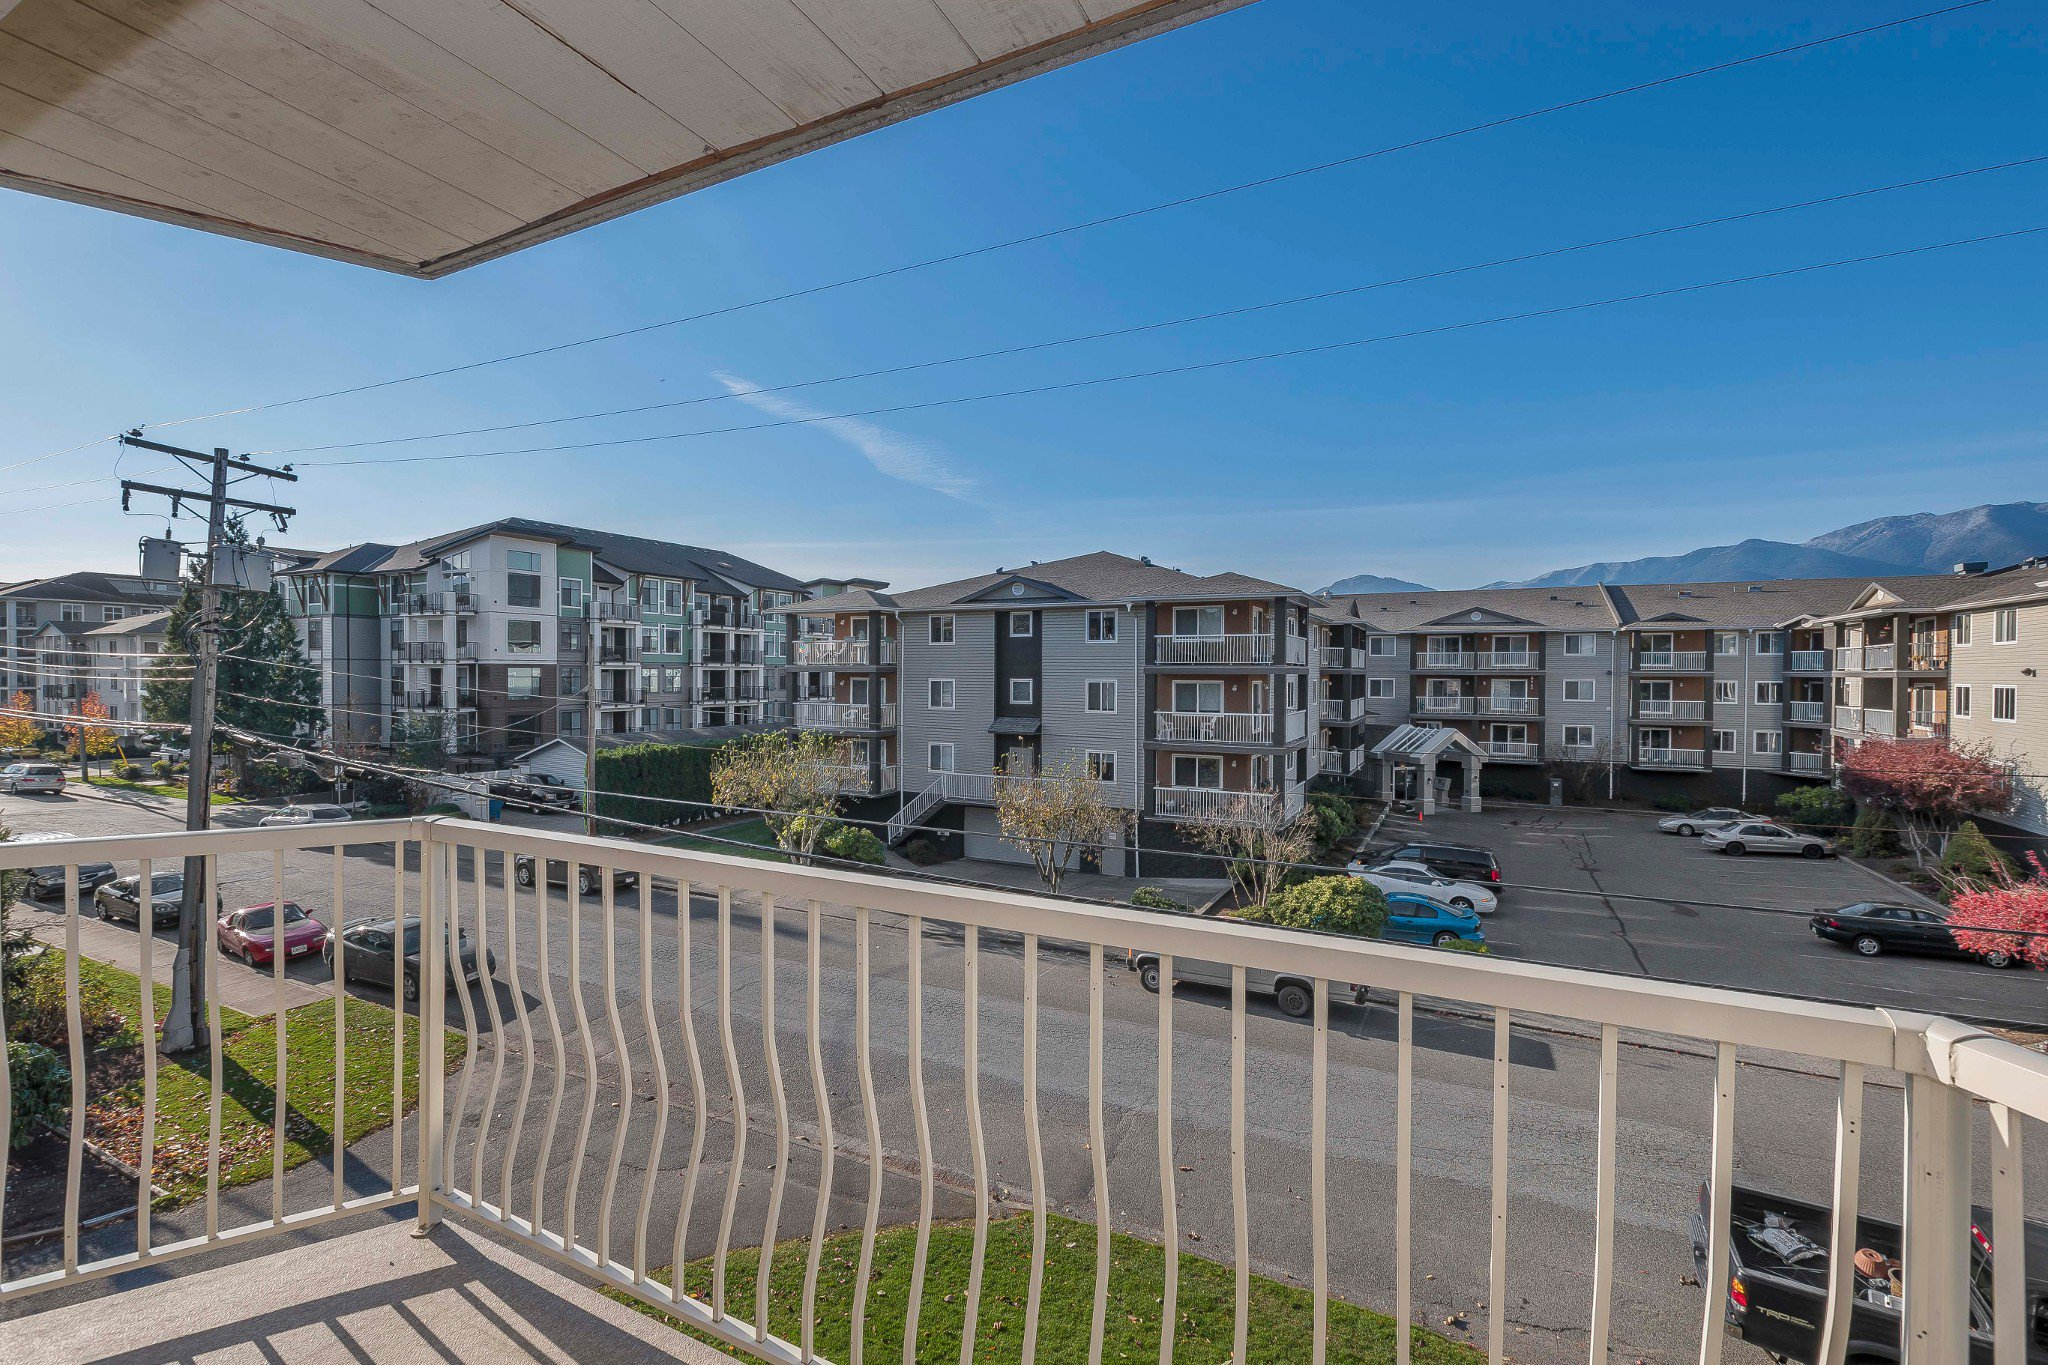 Photo 10: Photos: 305 9186 Edward Street in Chilliwack: Condo for sale : MLS®# R2218862